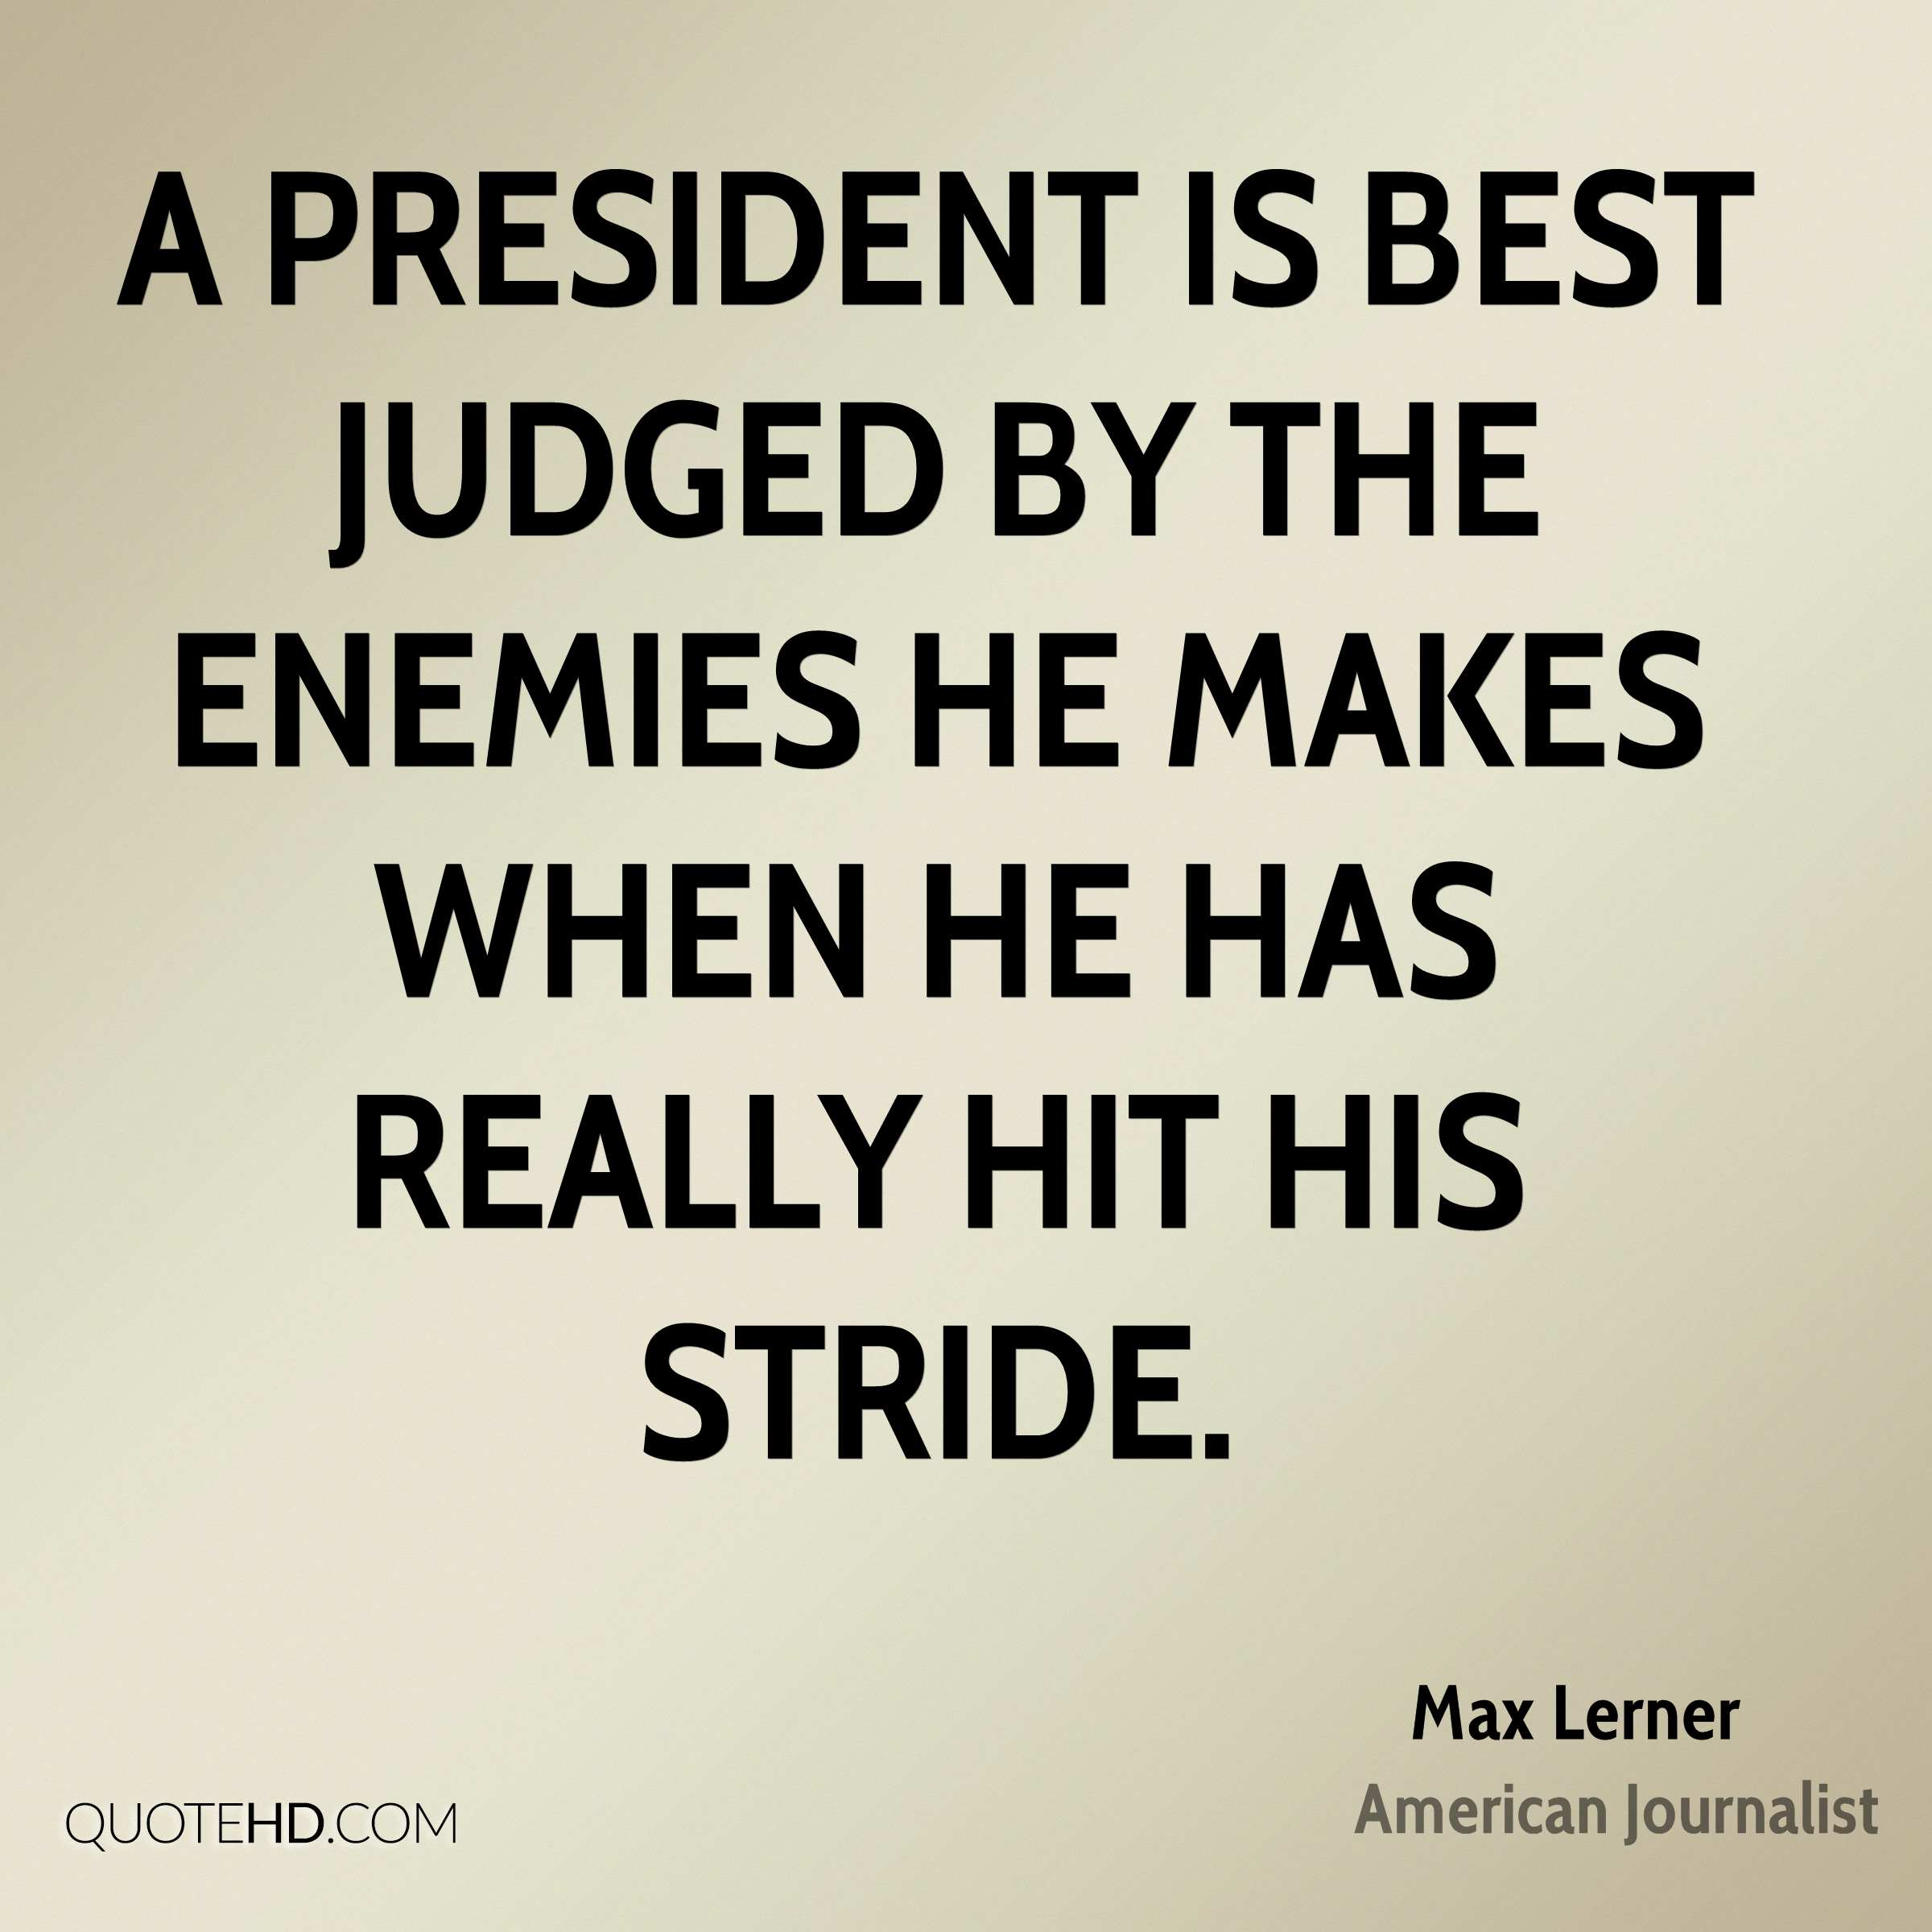 A President is best judged by the enemies he makes when he has really hit his stride.